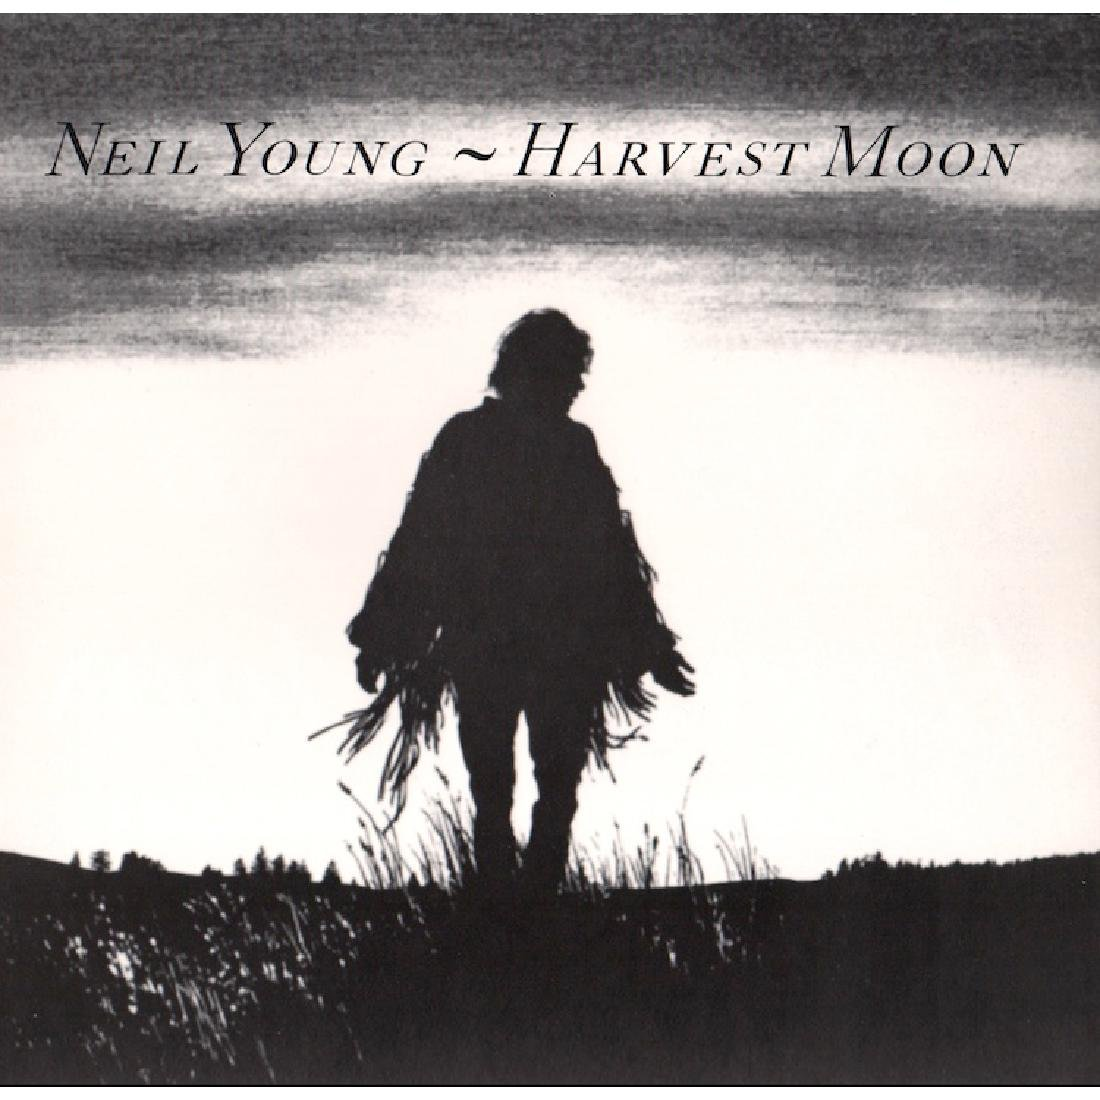 Neil Young - Harvest Moon - 1994 Promotional Flat